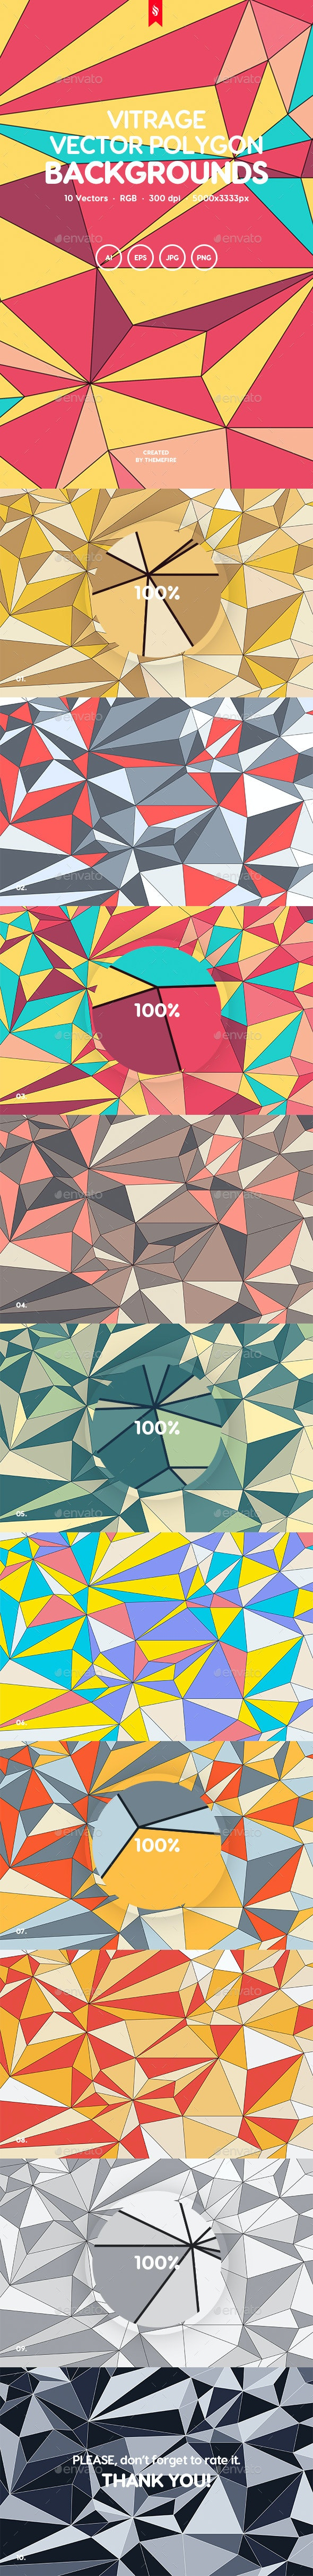 Vitrage - Colorful Vector Polygon Backgrounds - Abstract Backgrounds